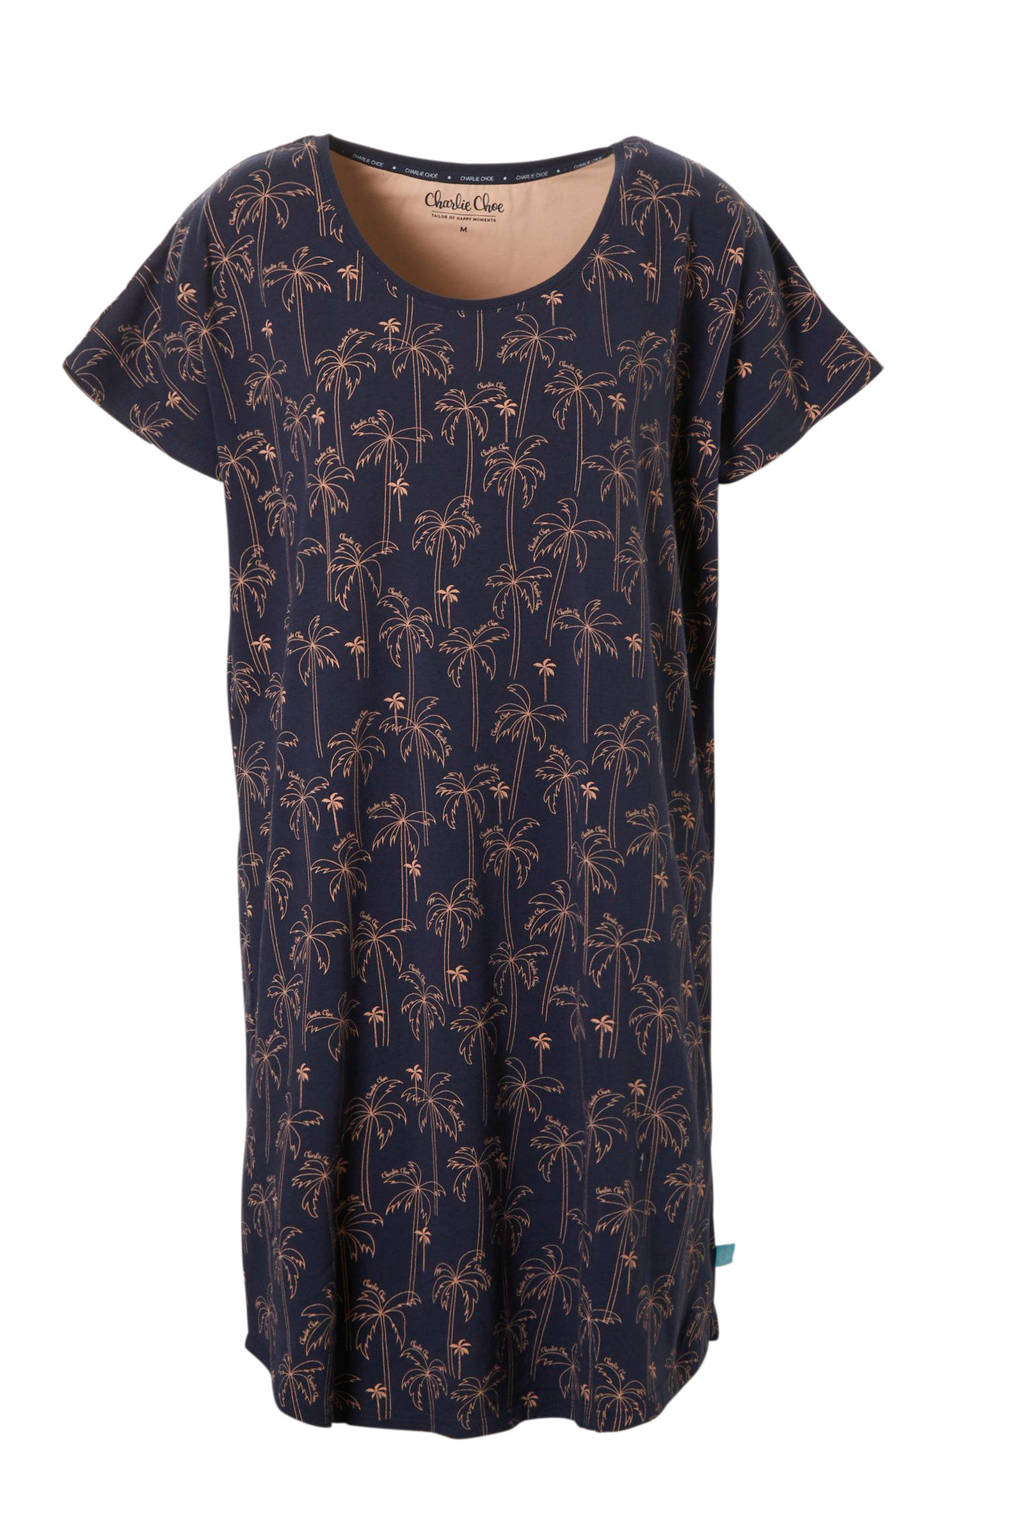 Charlie Choe nachthemd met all over print donkerblauw, Donkerblauw/roze